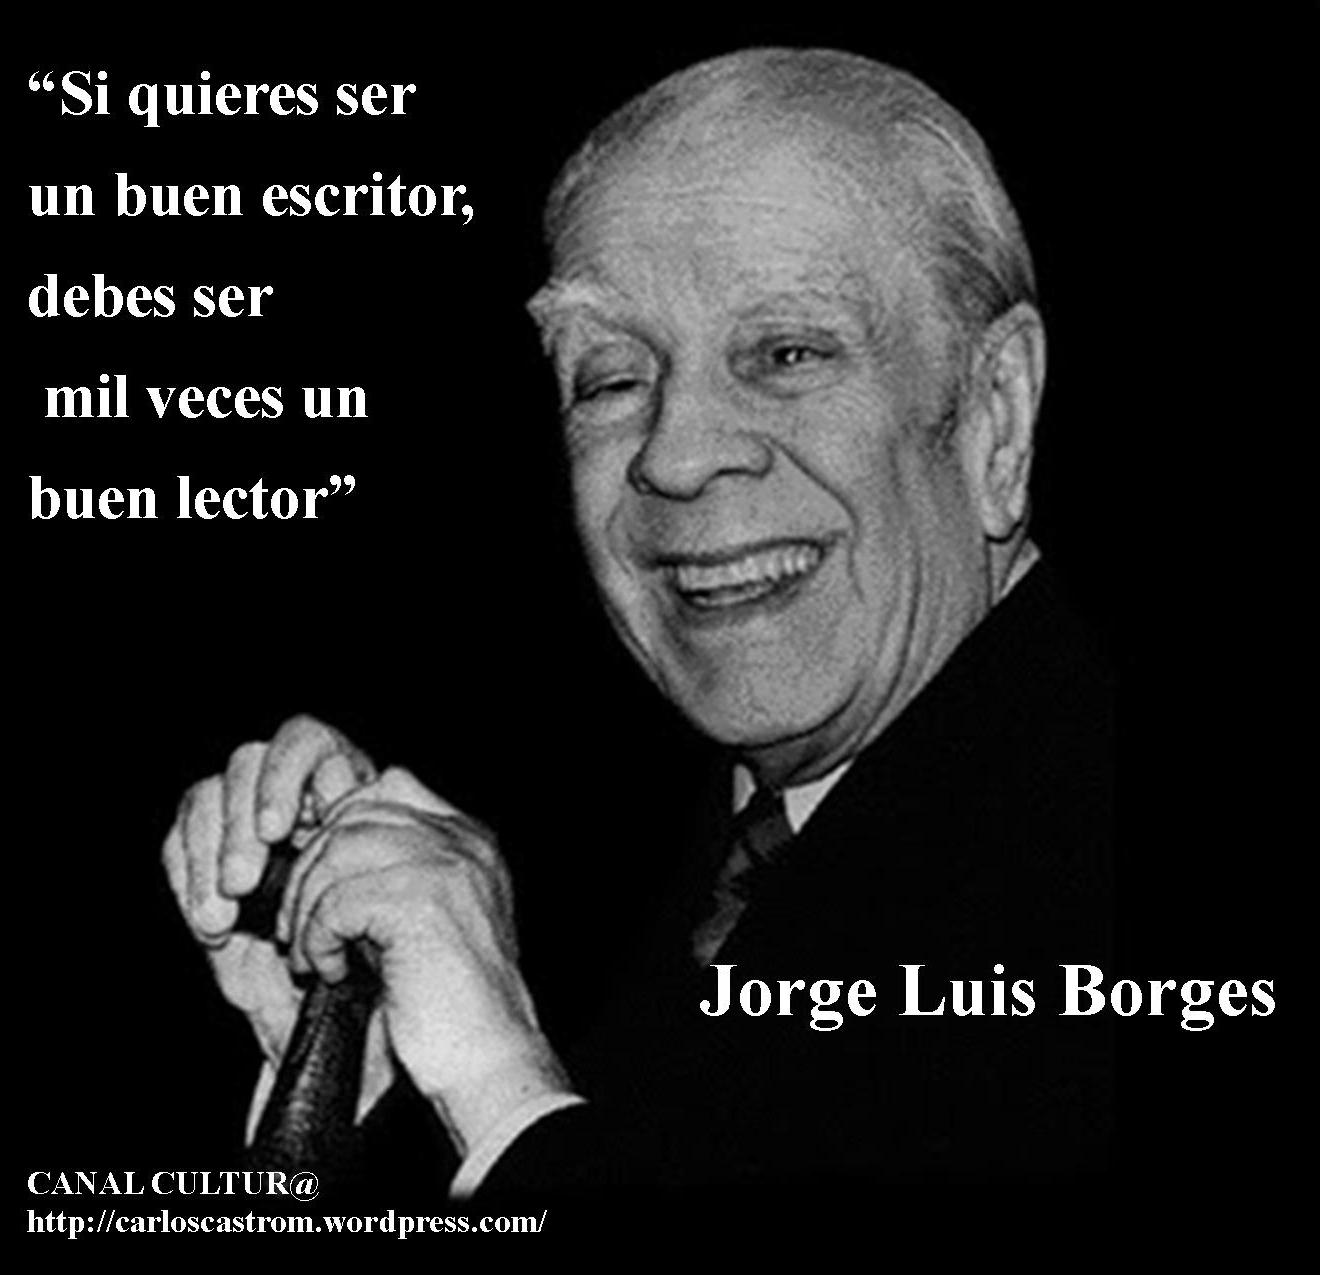 critical essays borges The act of writing to borges was intellectual play in it he was free to try out new storytelling techniques, or he fram elaborate puzzles for his readers to cruz, on another level, represents the paradoxes of recent mexican history literary criticism alazraki, j (1987) critical essays on jorge luis borges.